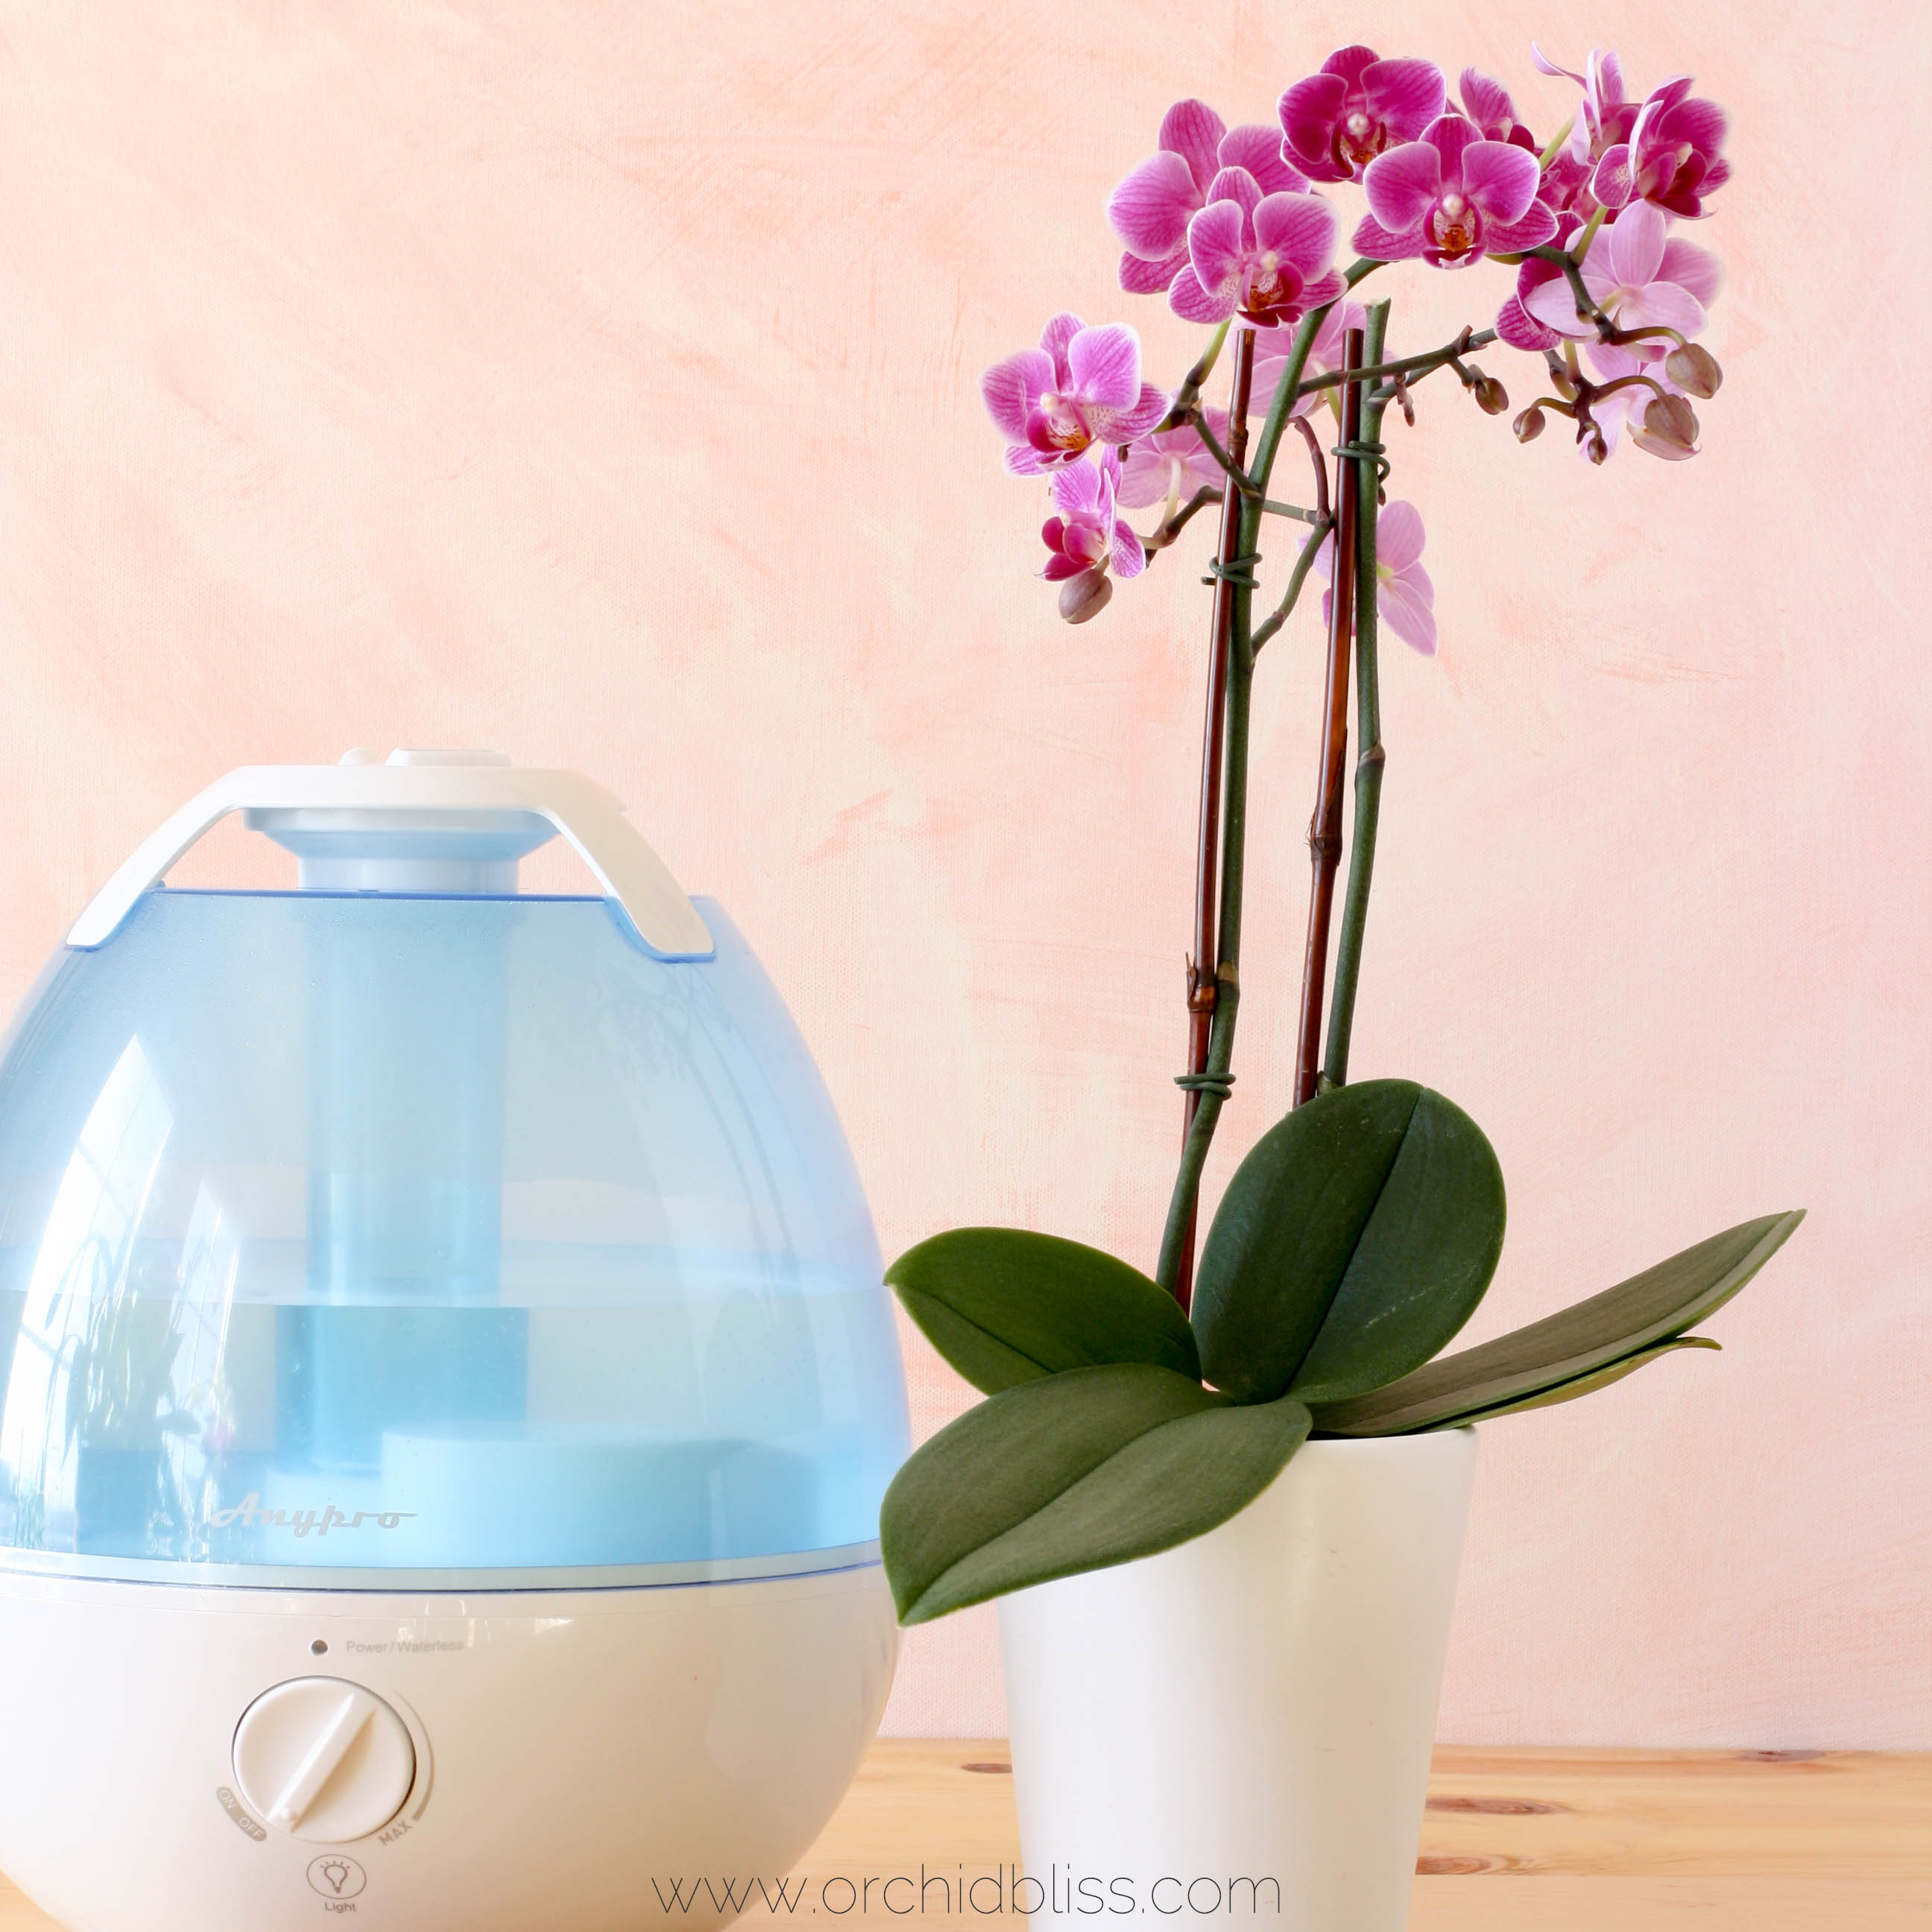 Vase for orchids gallery vases design picture how to increase humidity for happier orchids orchid bliss reviewsmspy reviewsmspy